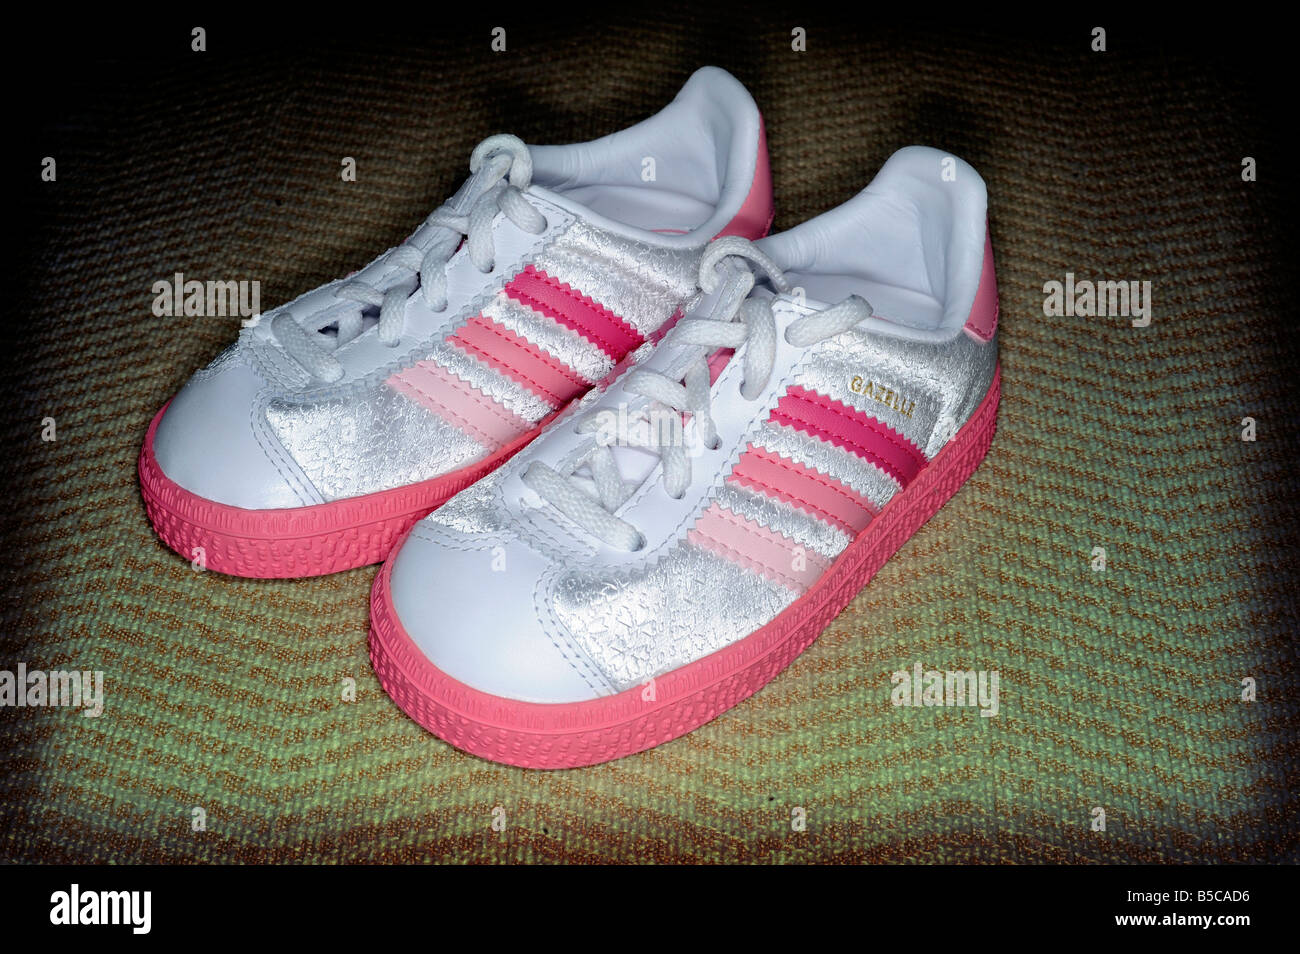 toddlers baby adidas gazelle female pink trainers shoes training sneakers  sportswear cute girls faad9afa85e7